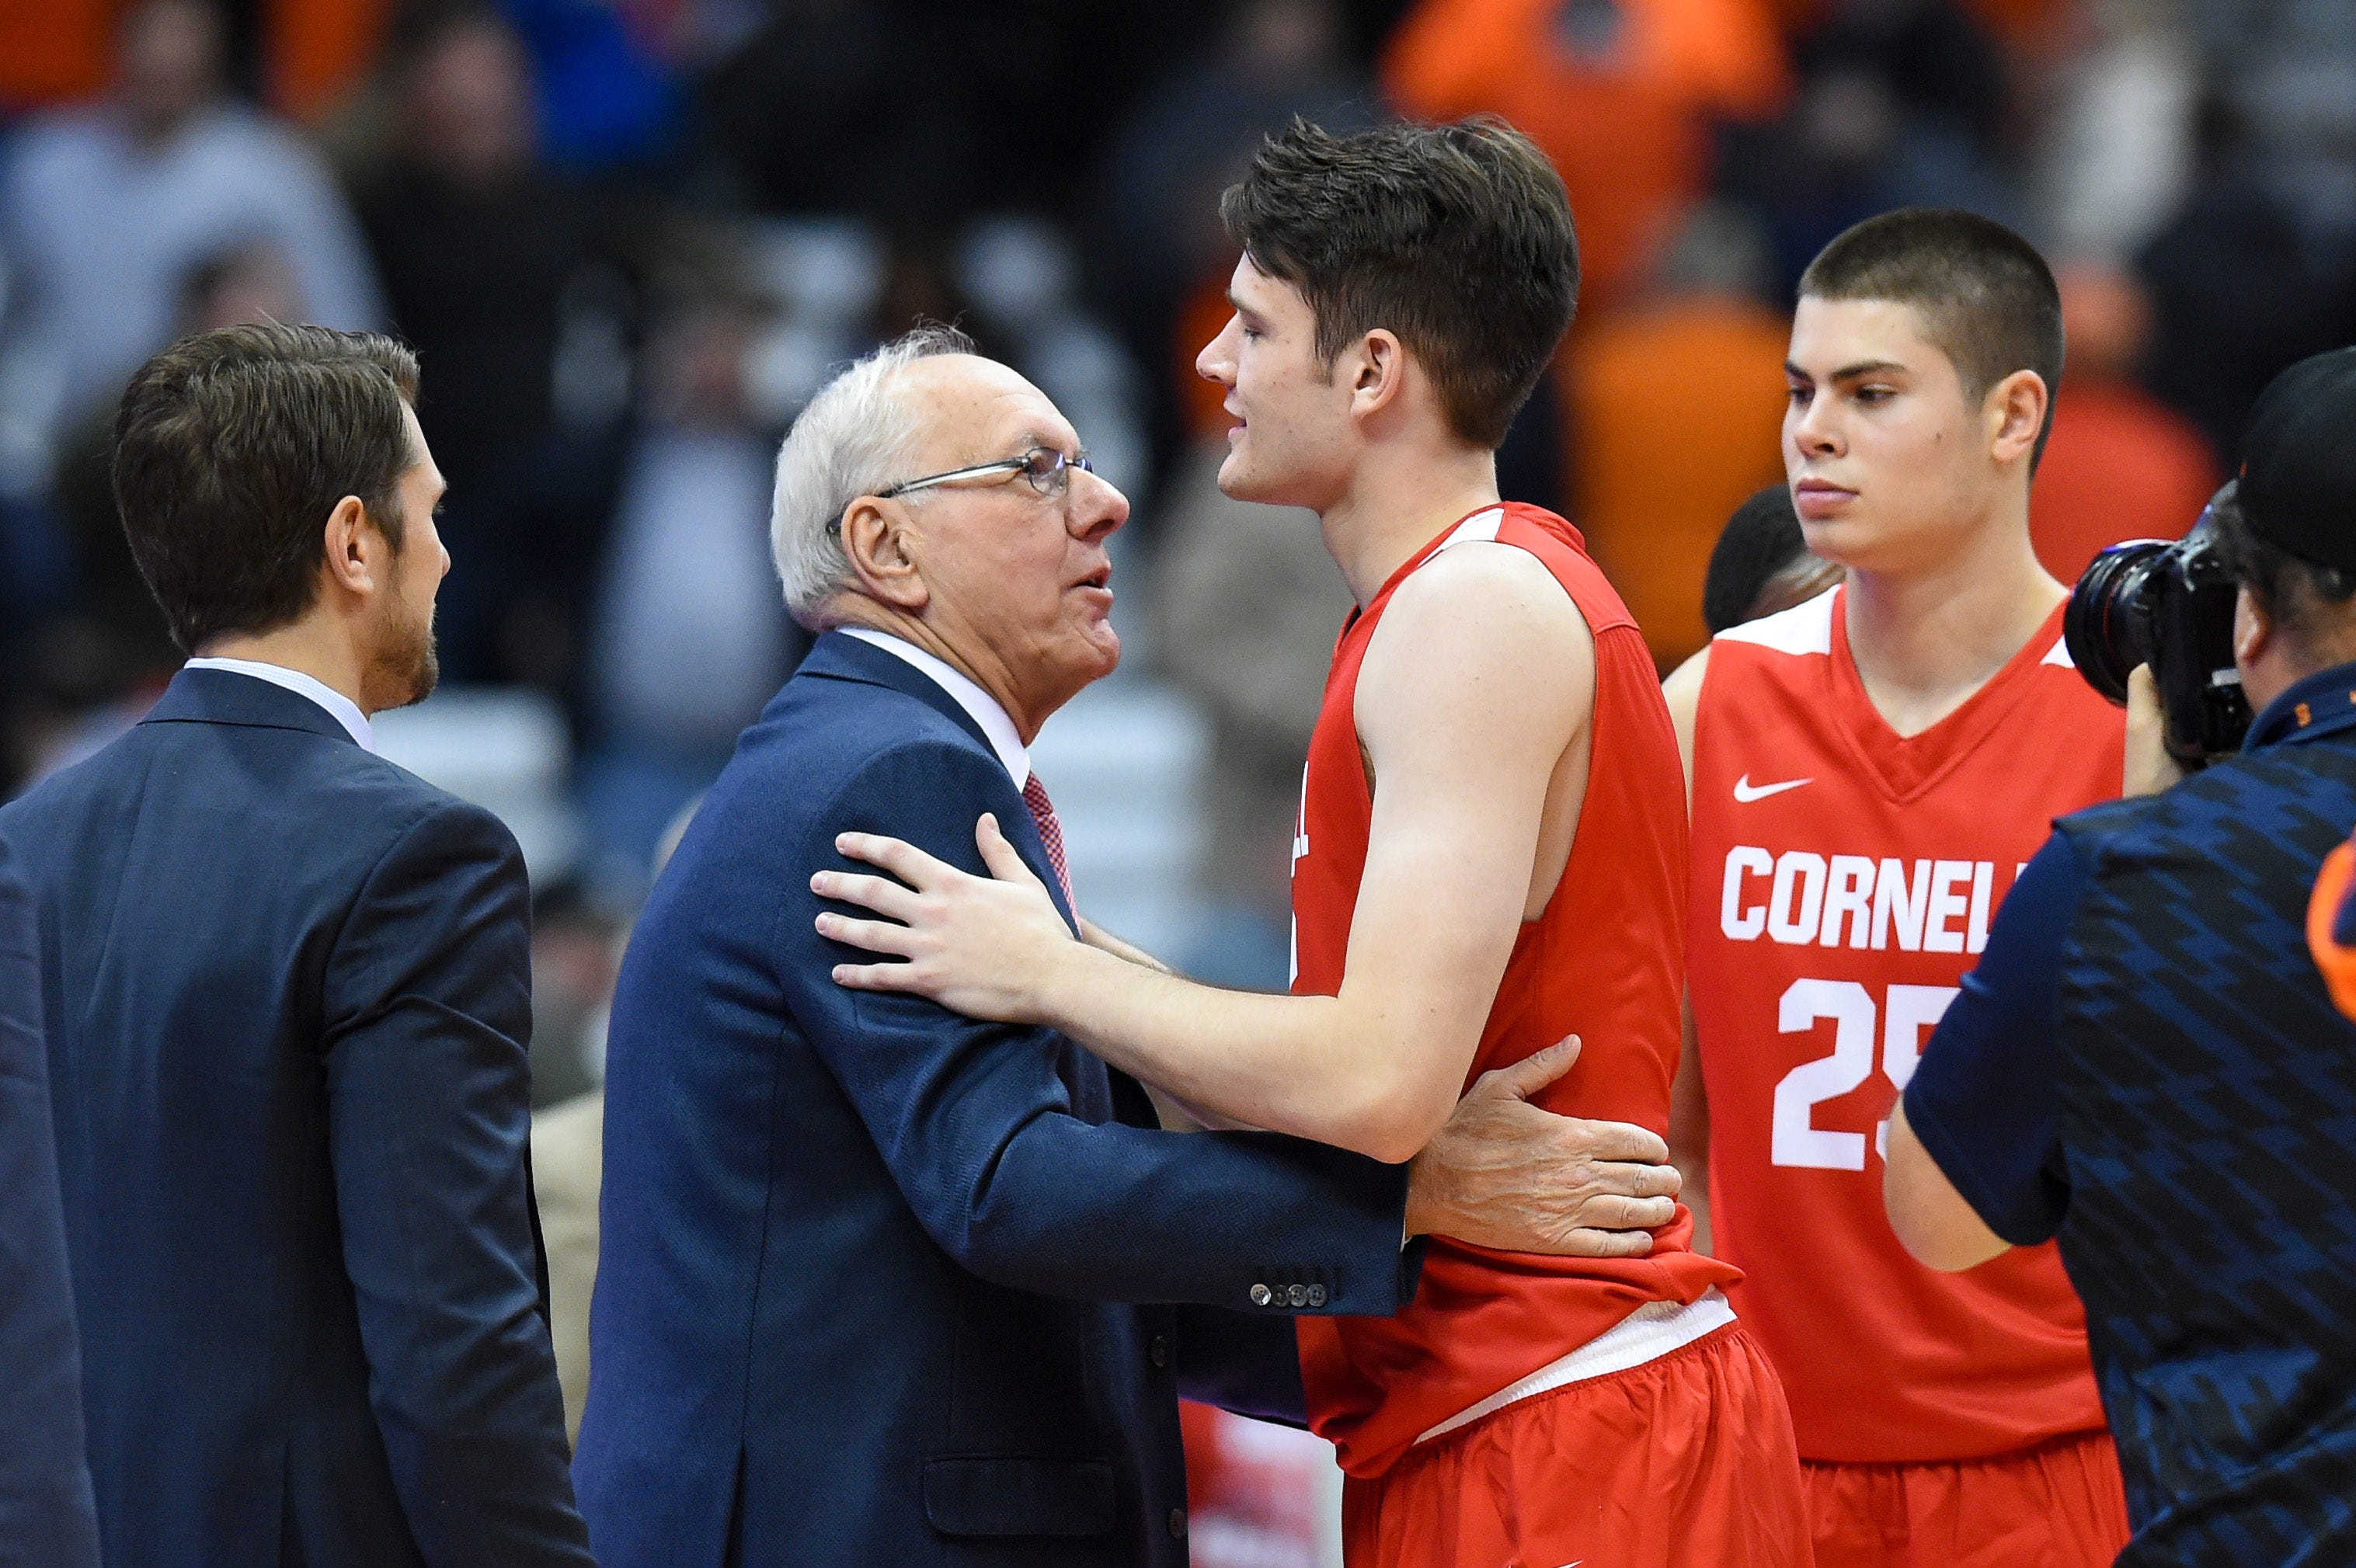 Jimmy Boeheim 4 Things About The Cornell Player Jim Boeheim S Son